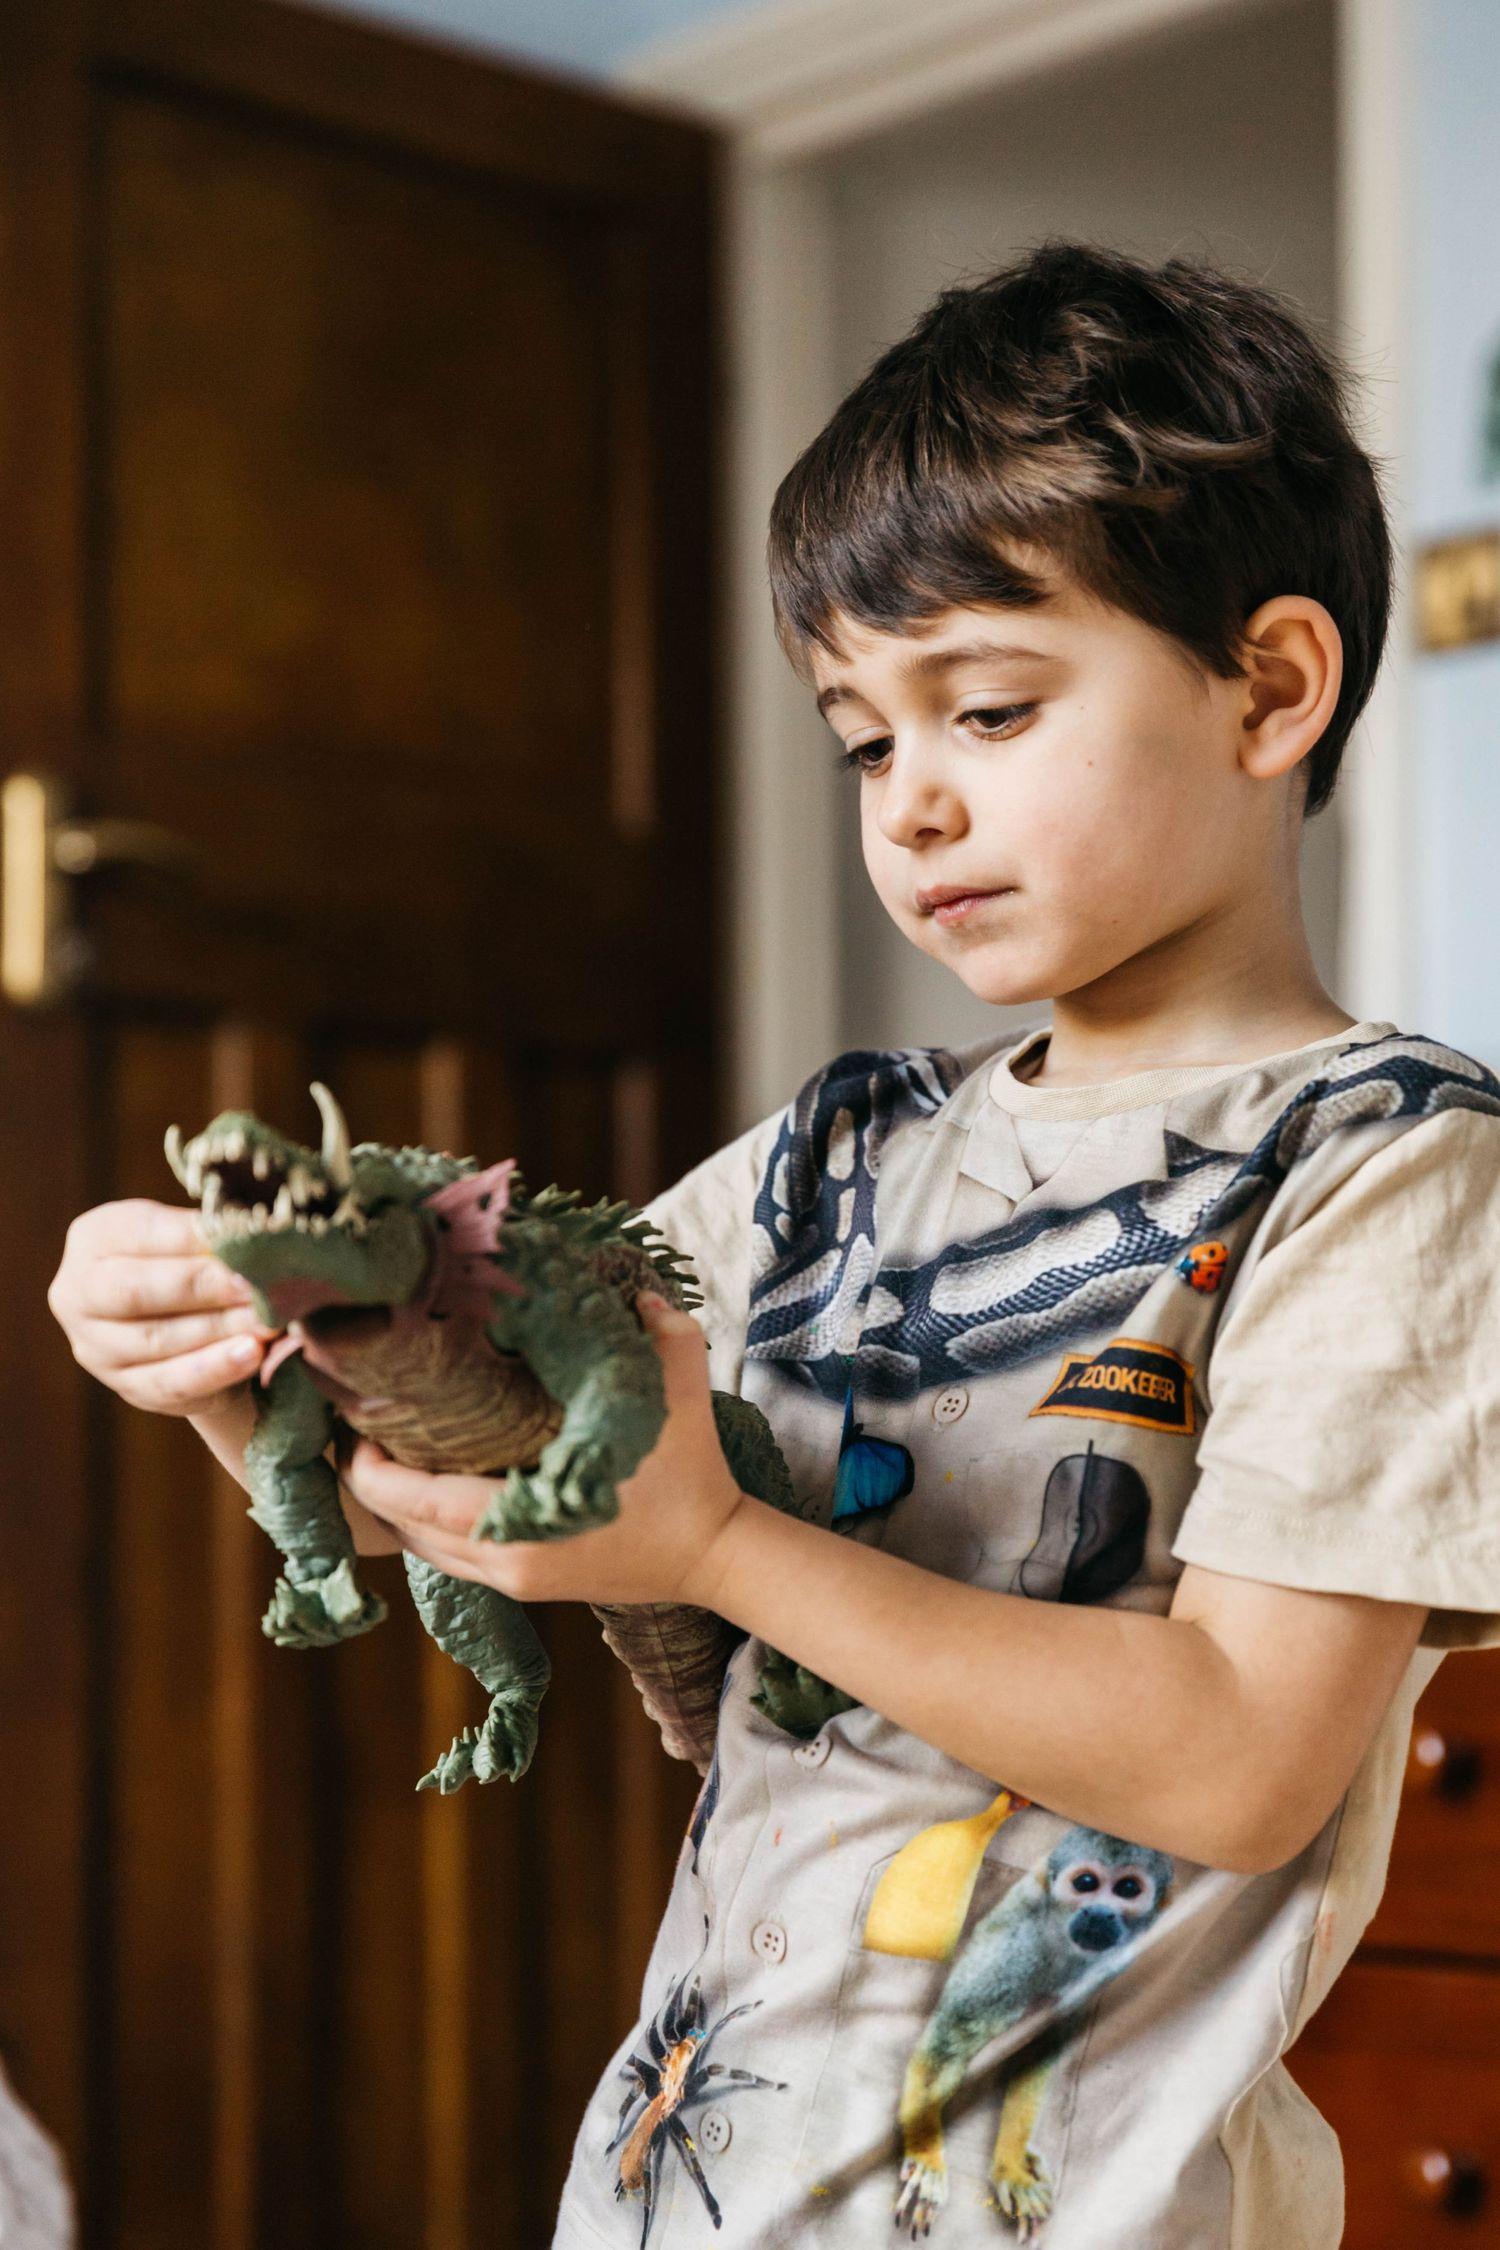 boy looking seriously at his toy dinosaur